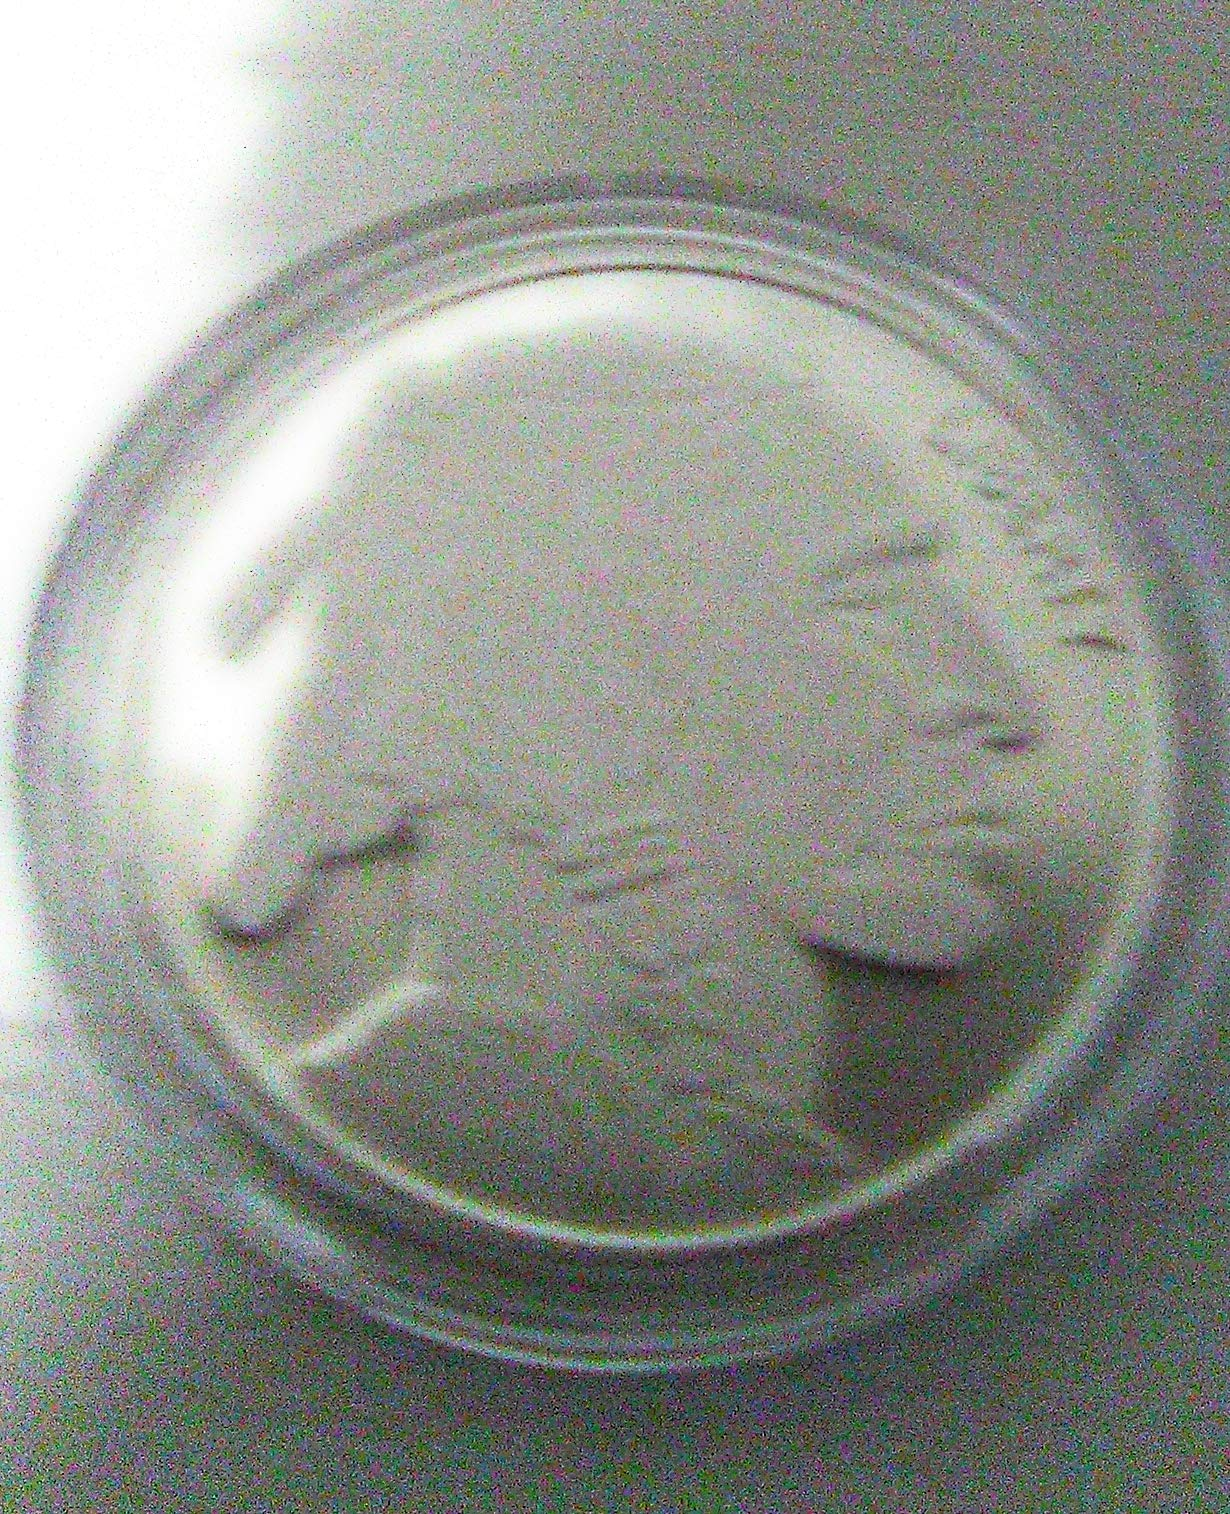 American Buffalo Fine Silver Round Sealed in Airtight .999 Fine Silver 1 Troy. Oz (31.1Gram) in Protection Air Tight